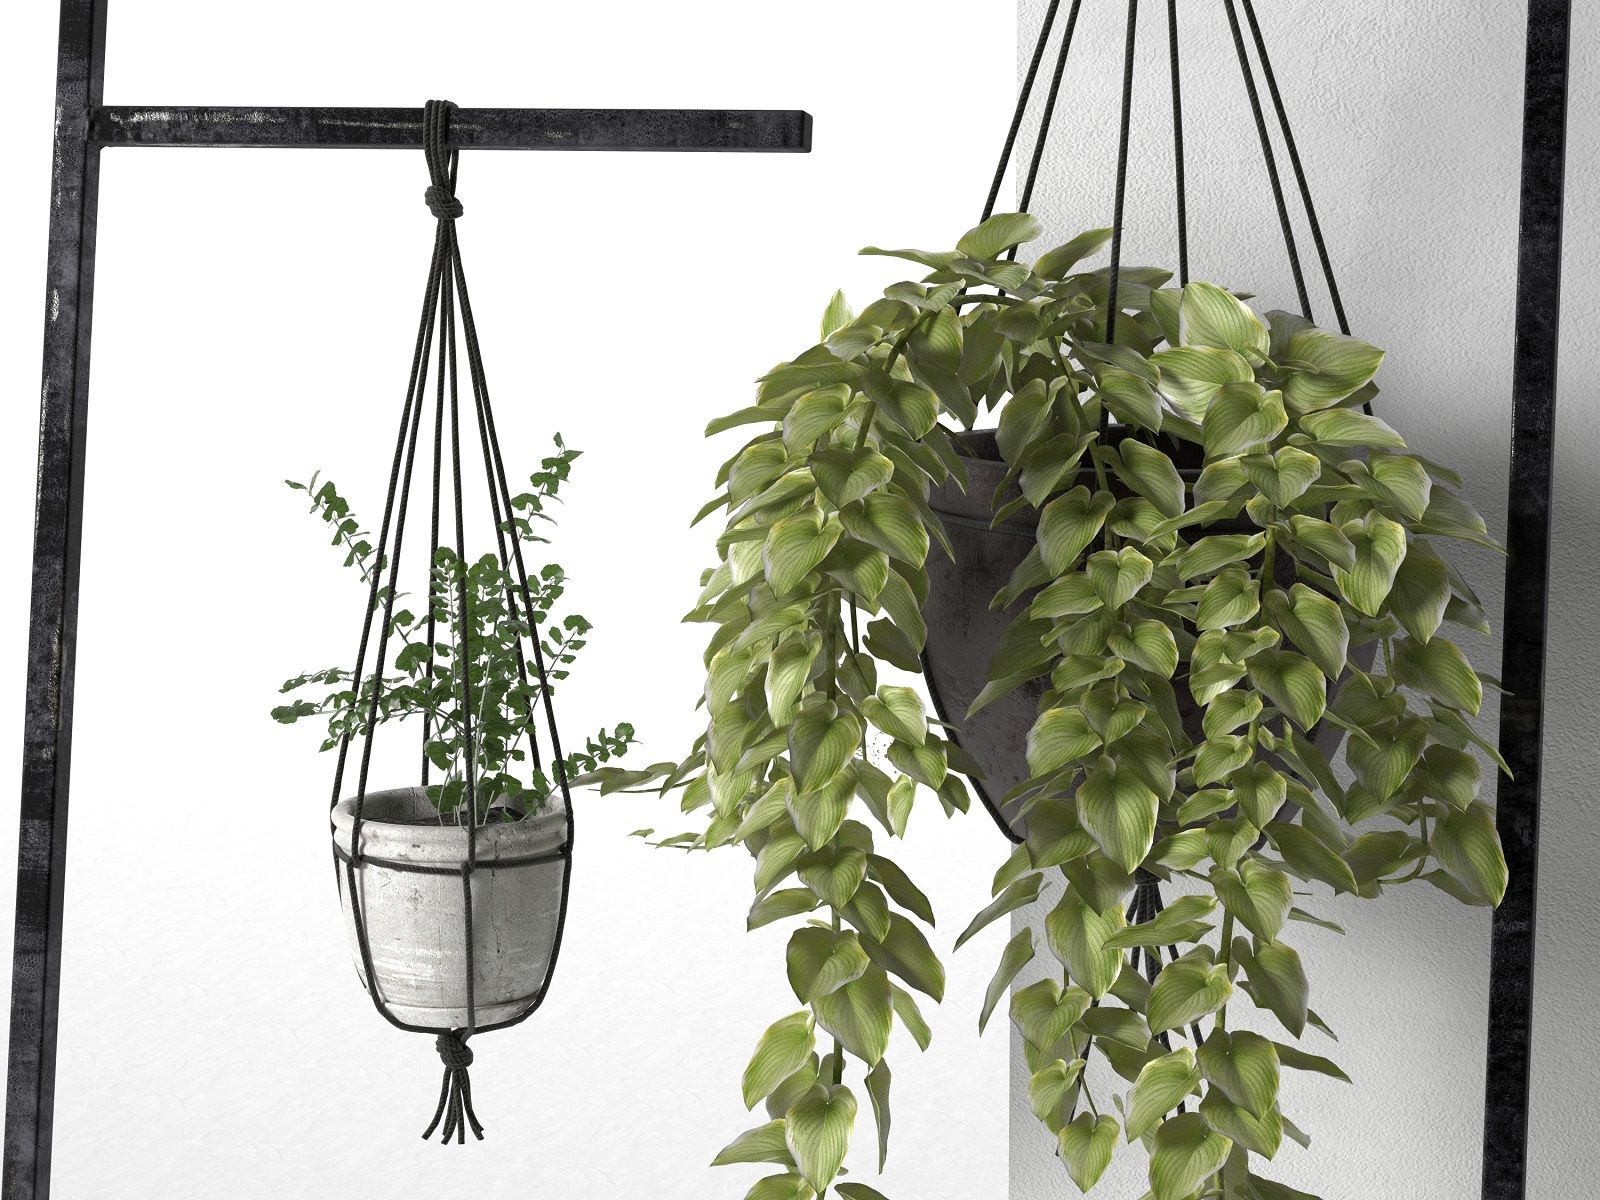 Leaning Display Ladder With Hanging Plants